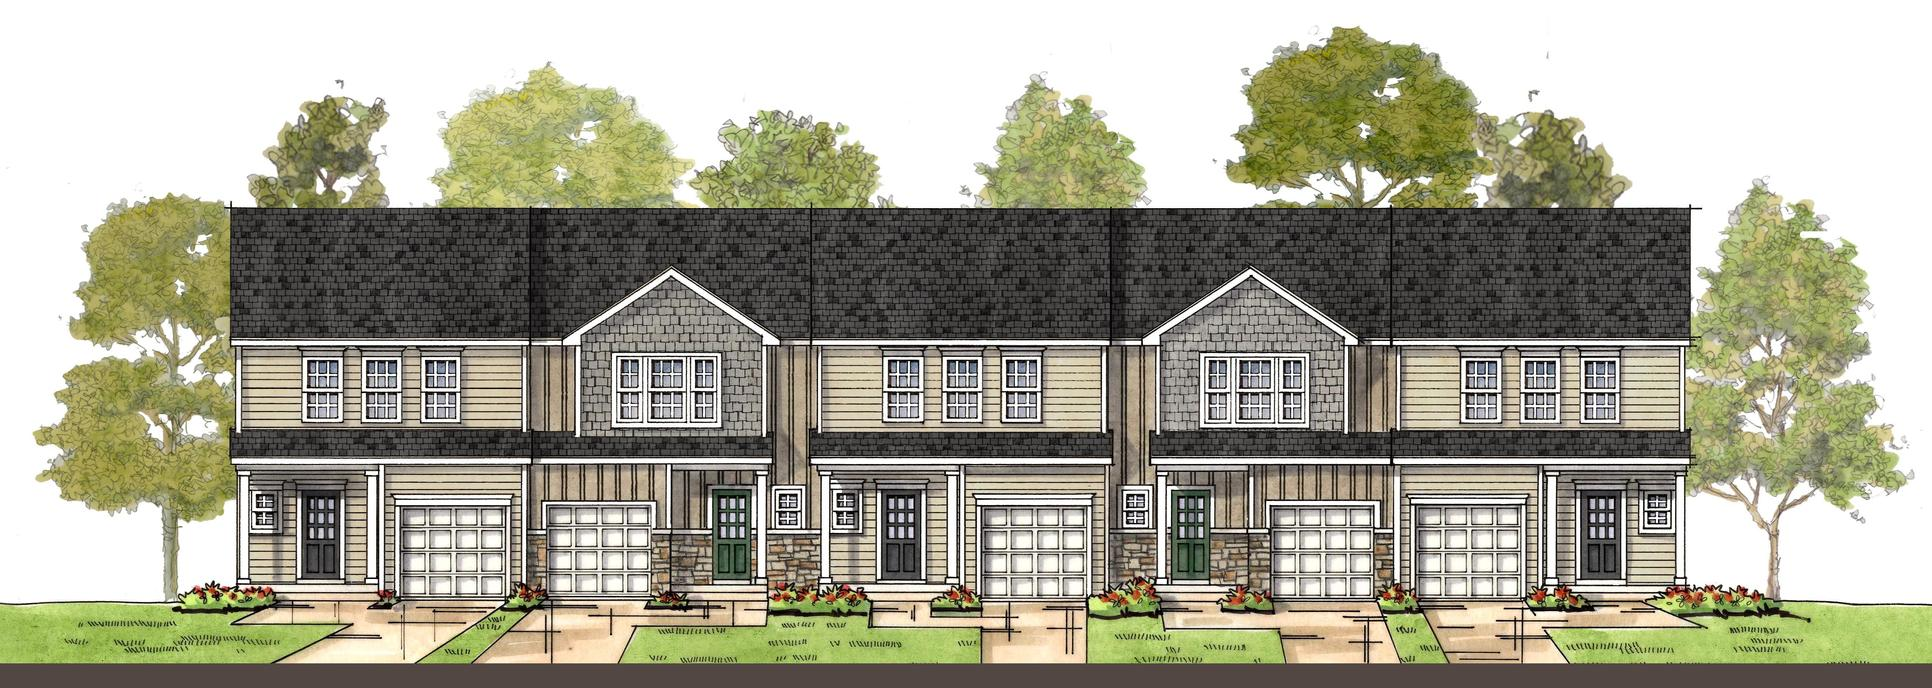 Townhomes:Townhomes